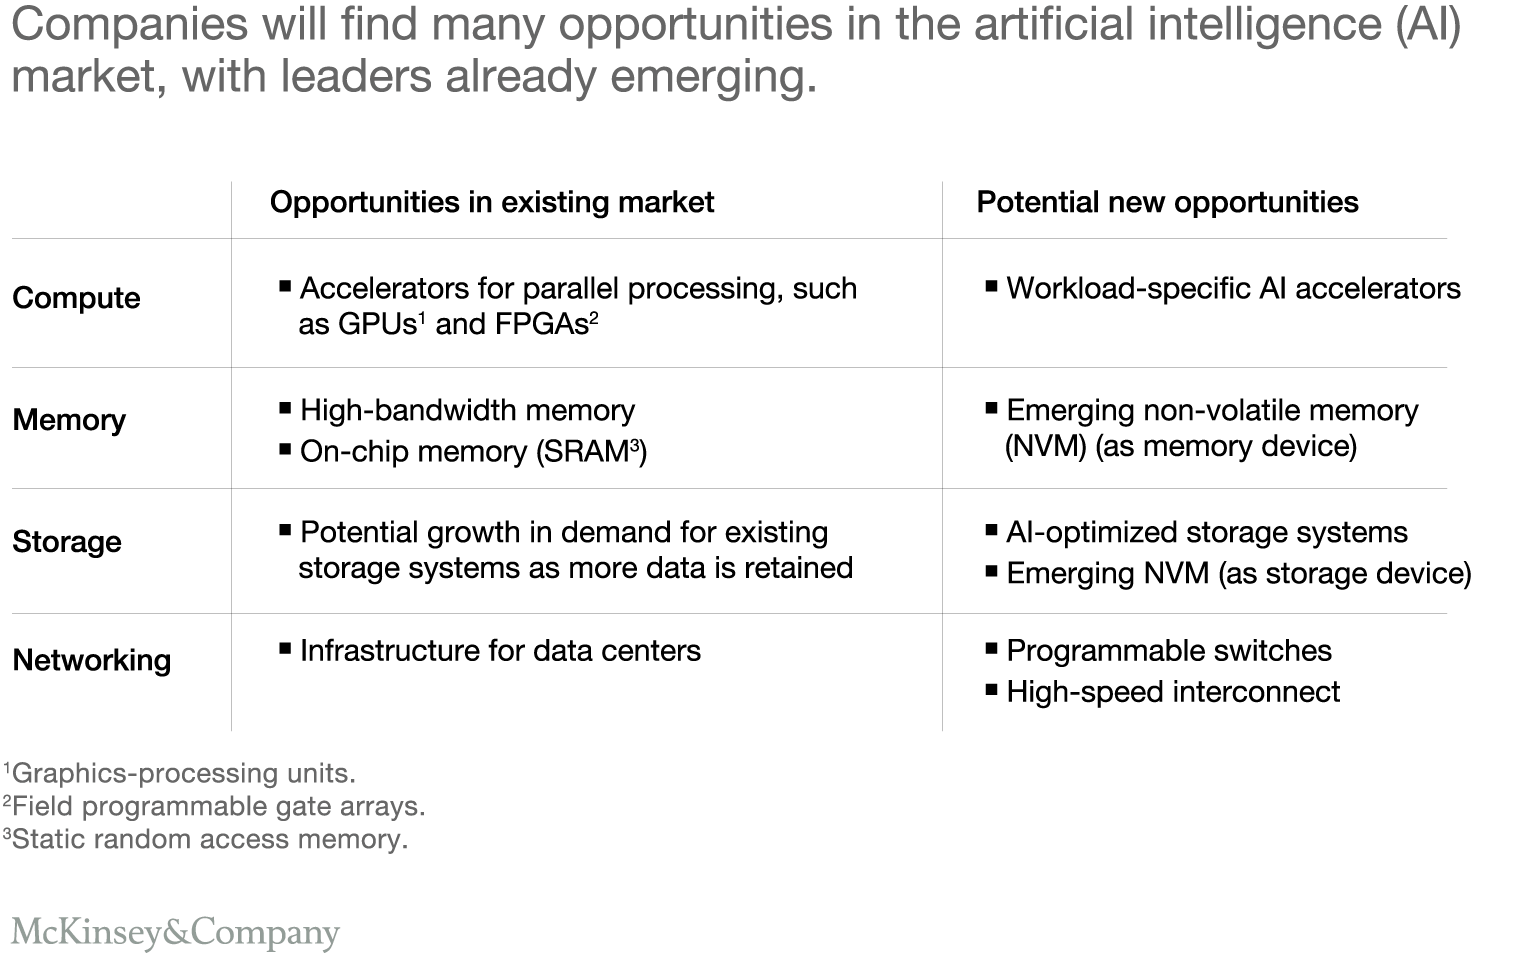 Companies will find many opportunities in the artificial intelligence (AI) market, with leaders already emerging.